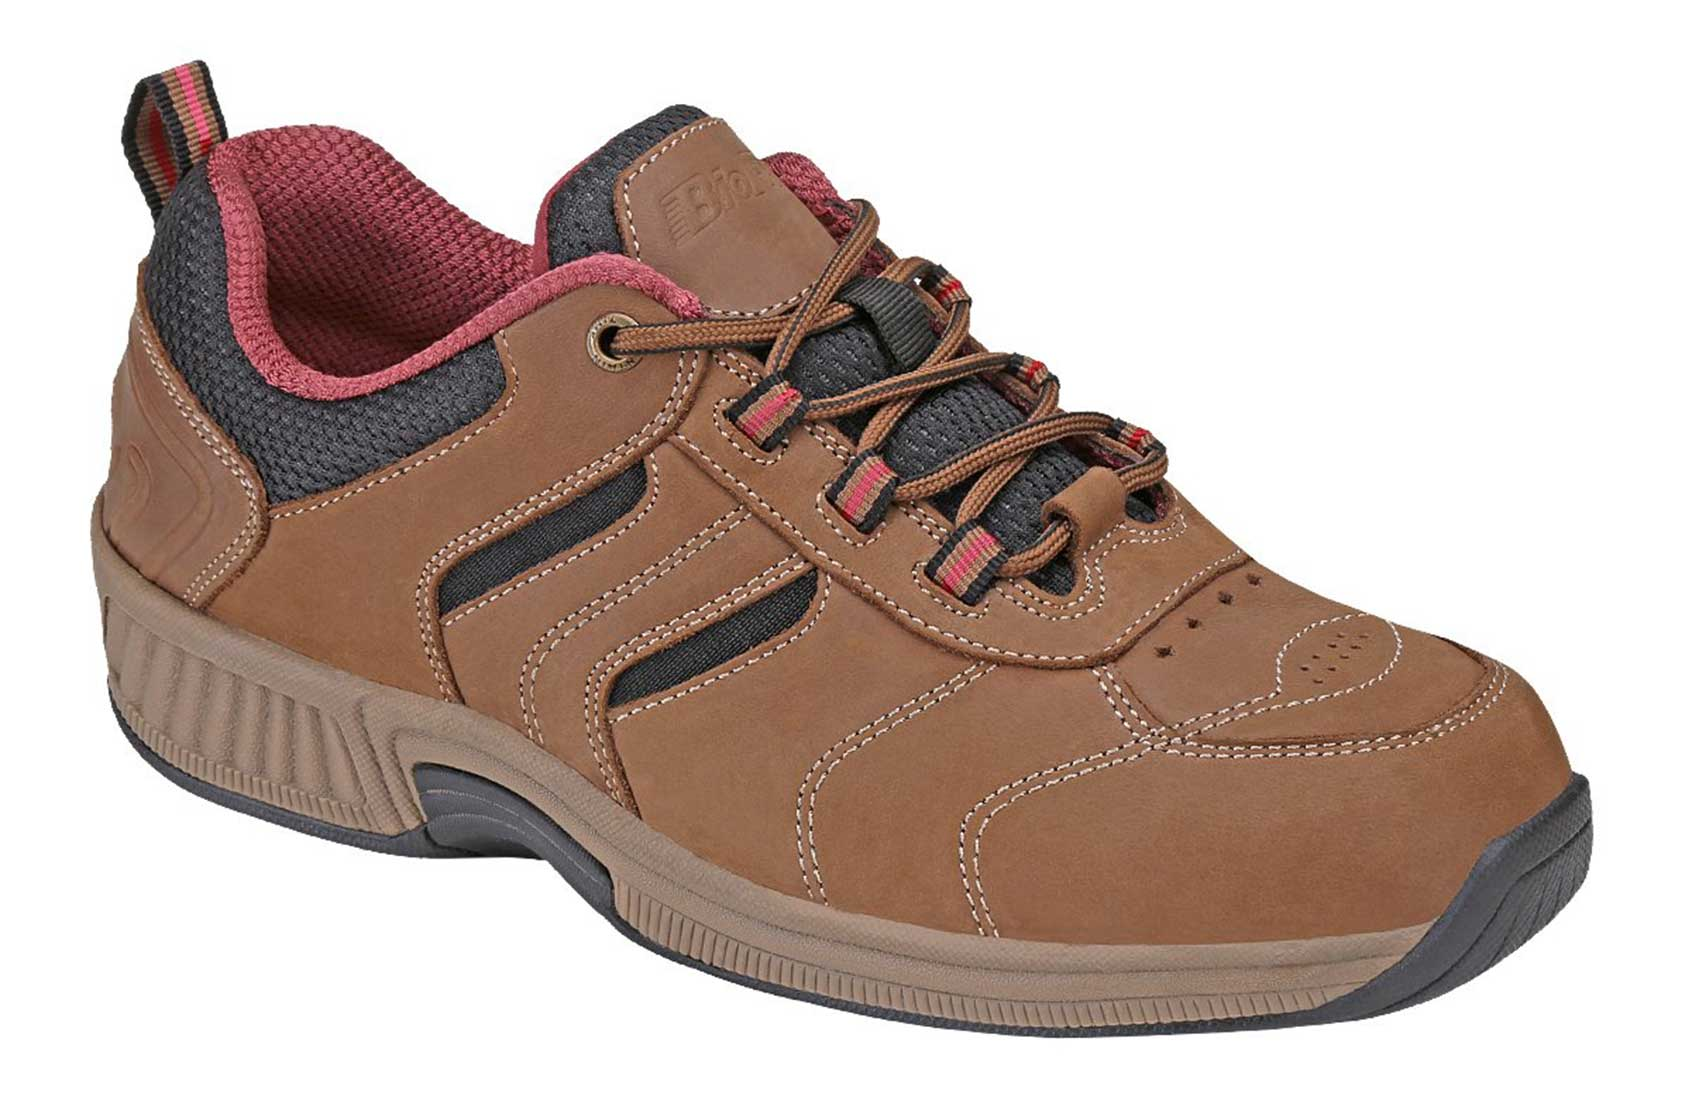 Orthofeet Shoes Sonoma 944 Outdoor Hiking Comfort Shoe